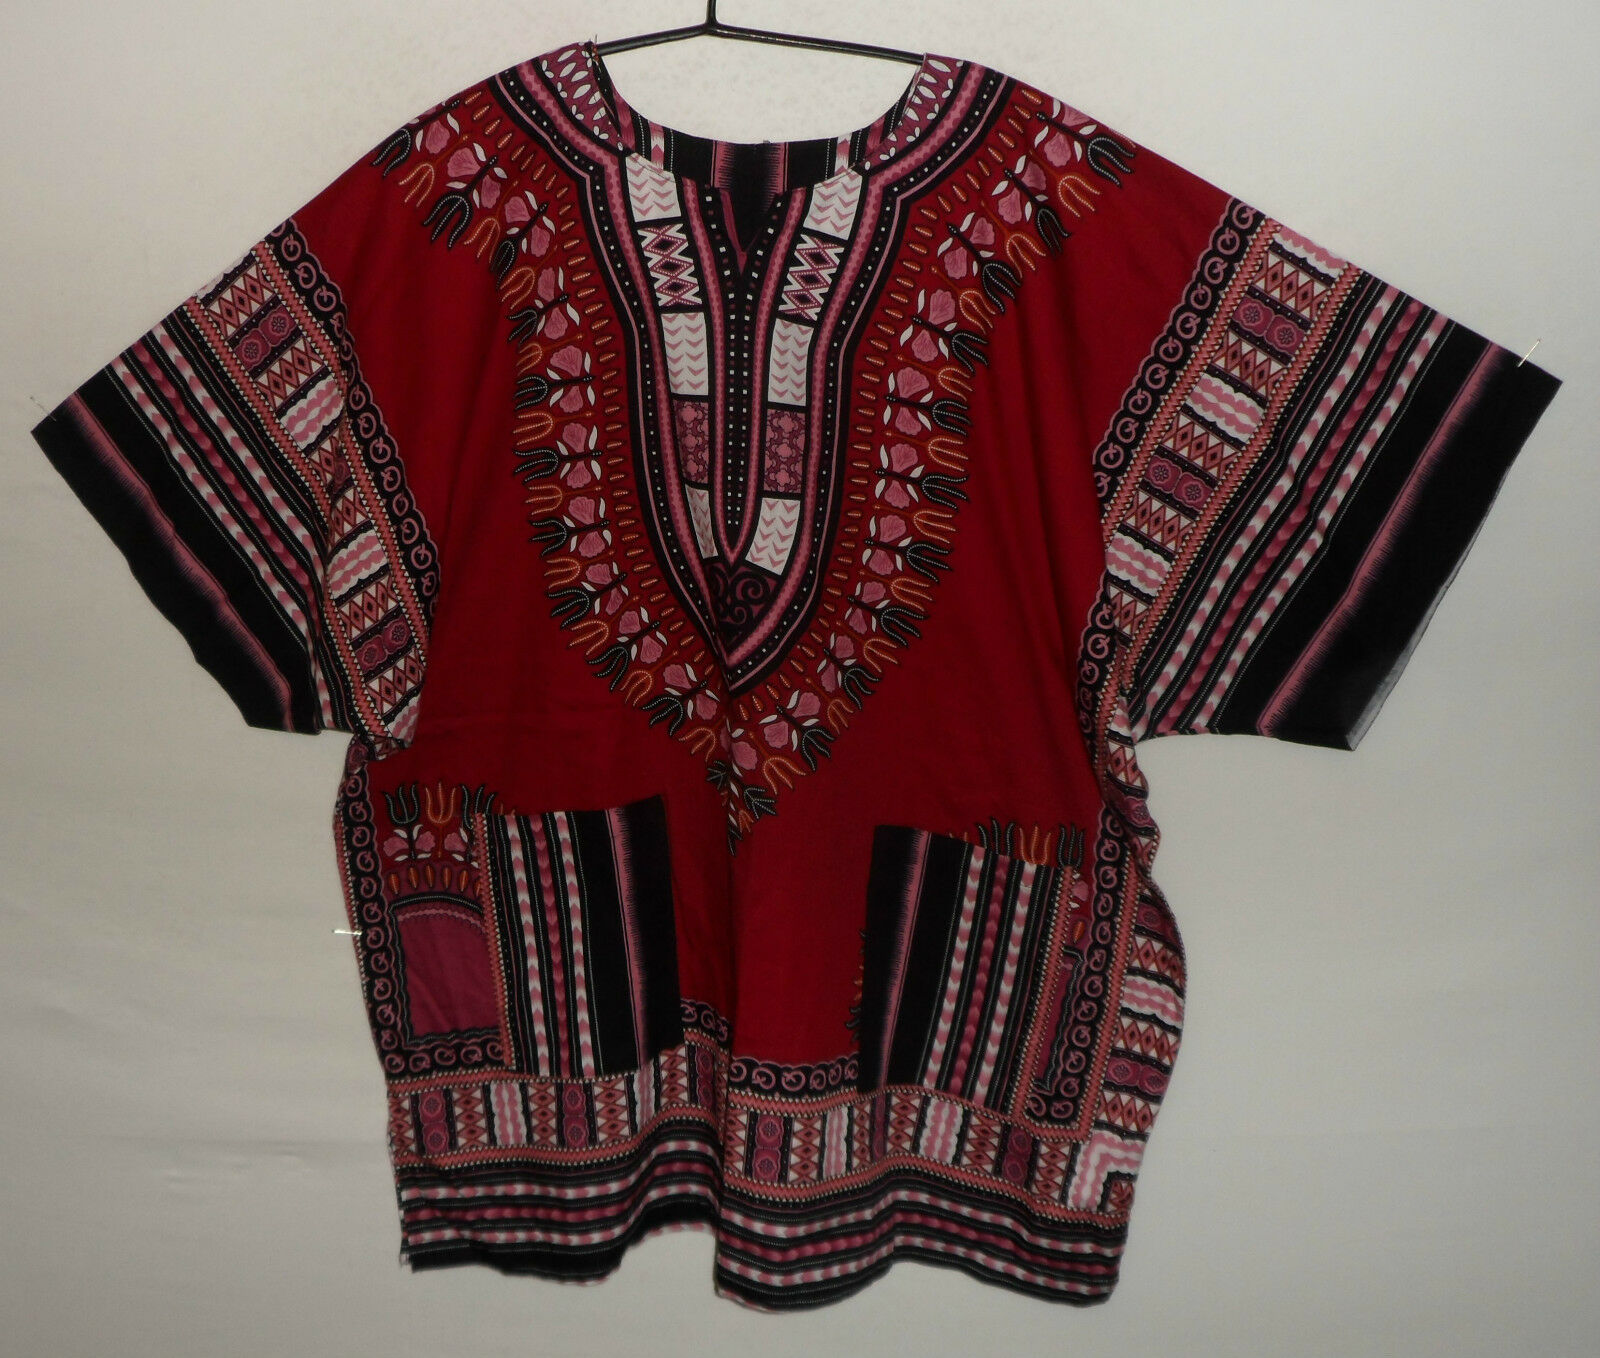 "DASHIKI shirt UK 3XL US 2XL 56"" 143 cm chest XT 32"" long"